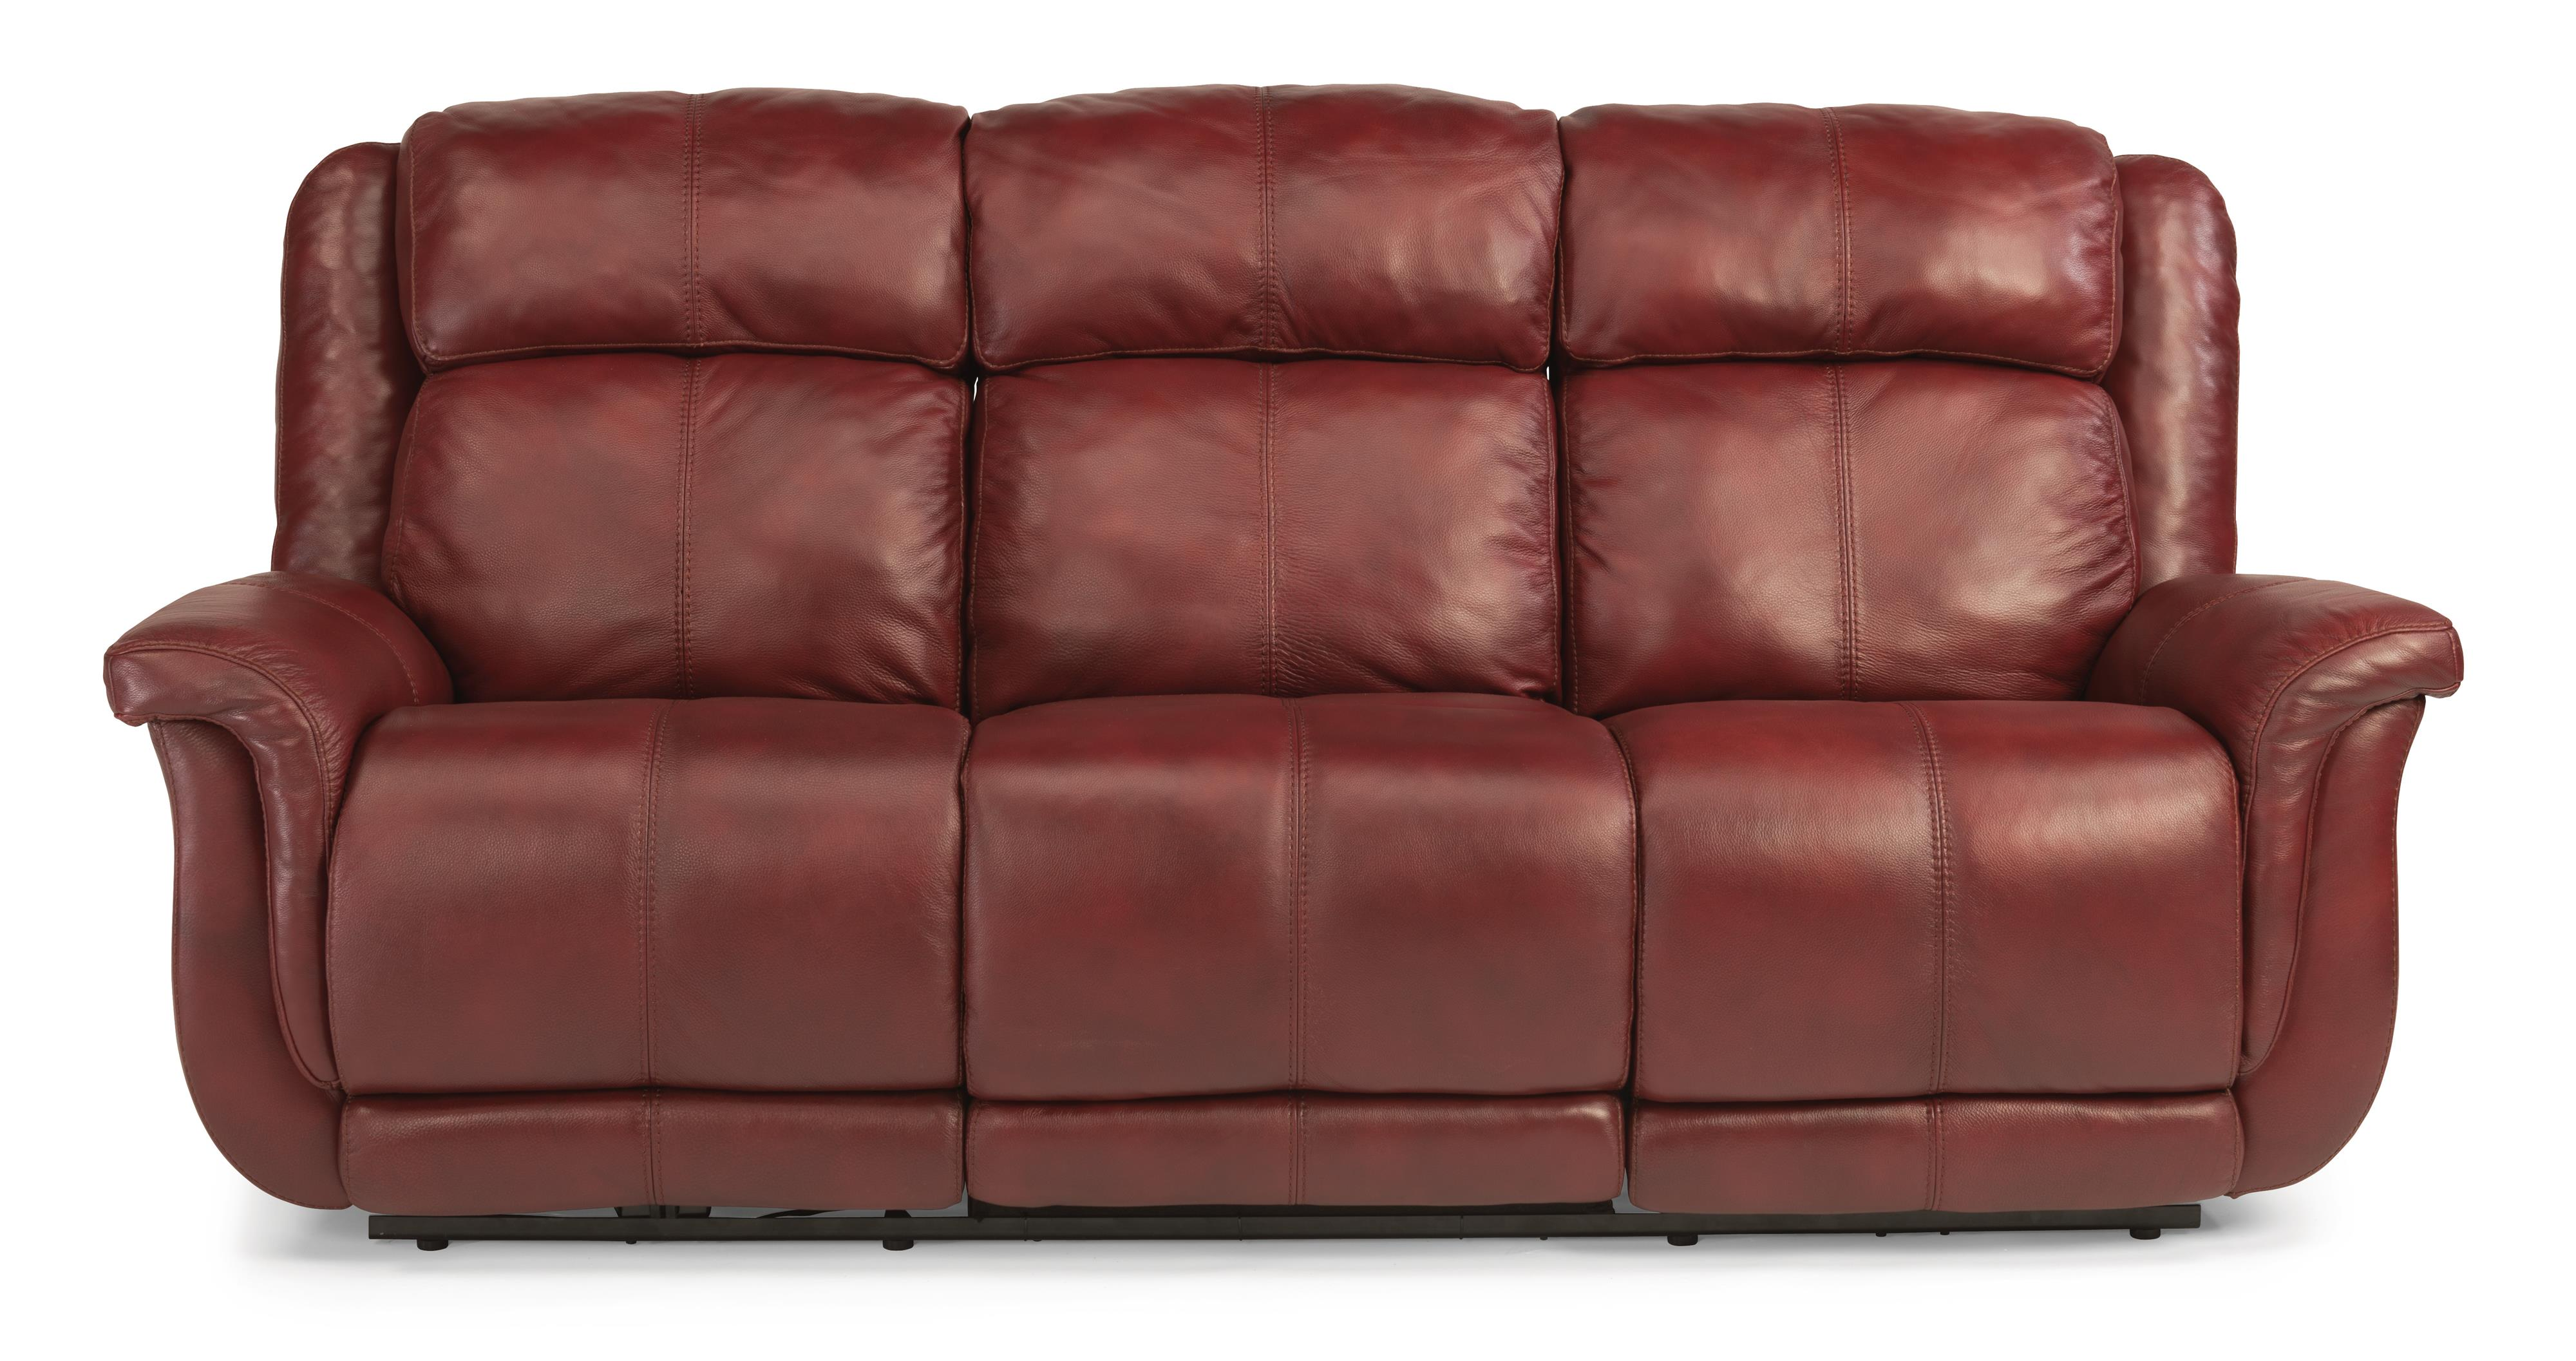 Flexsteel Latitudes-Brookings Power Reclining Sofa - Item Number: 1251-62P-LSP-60